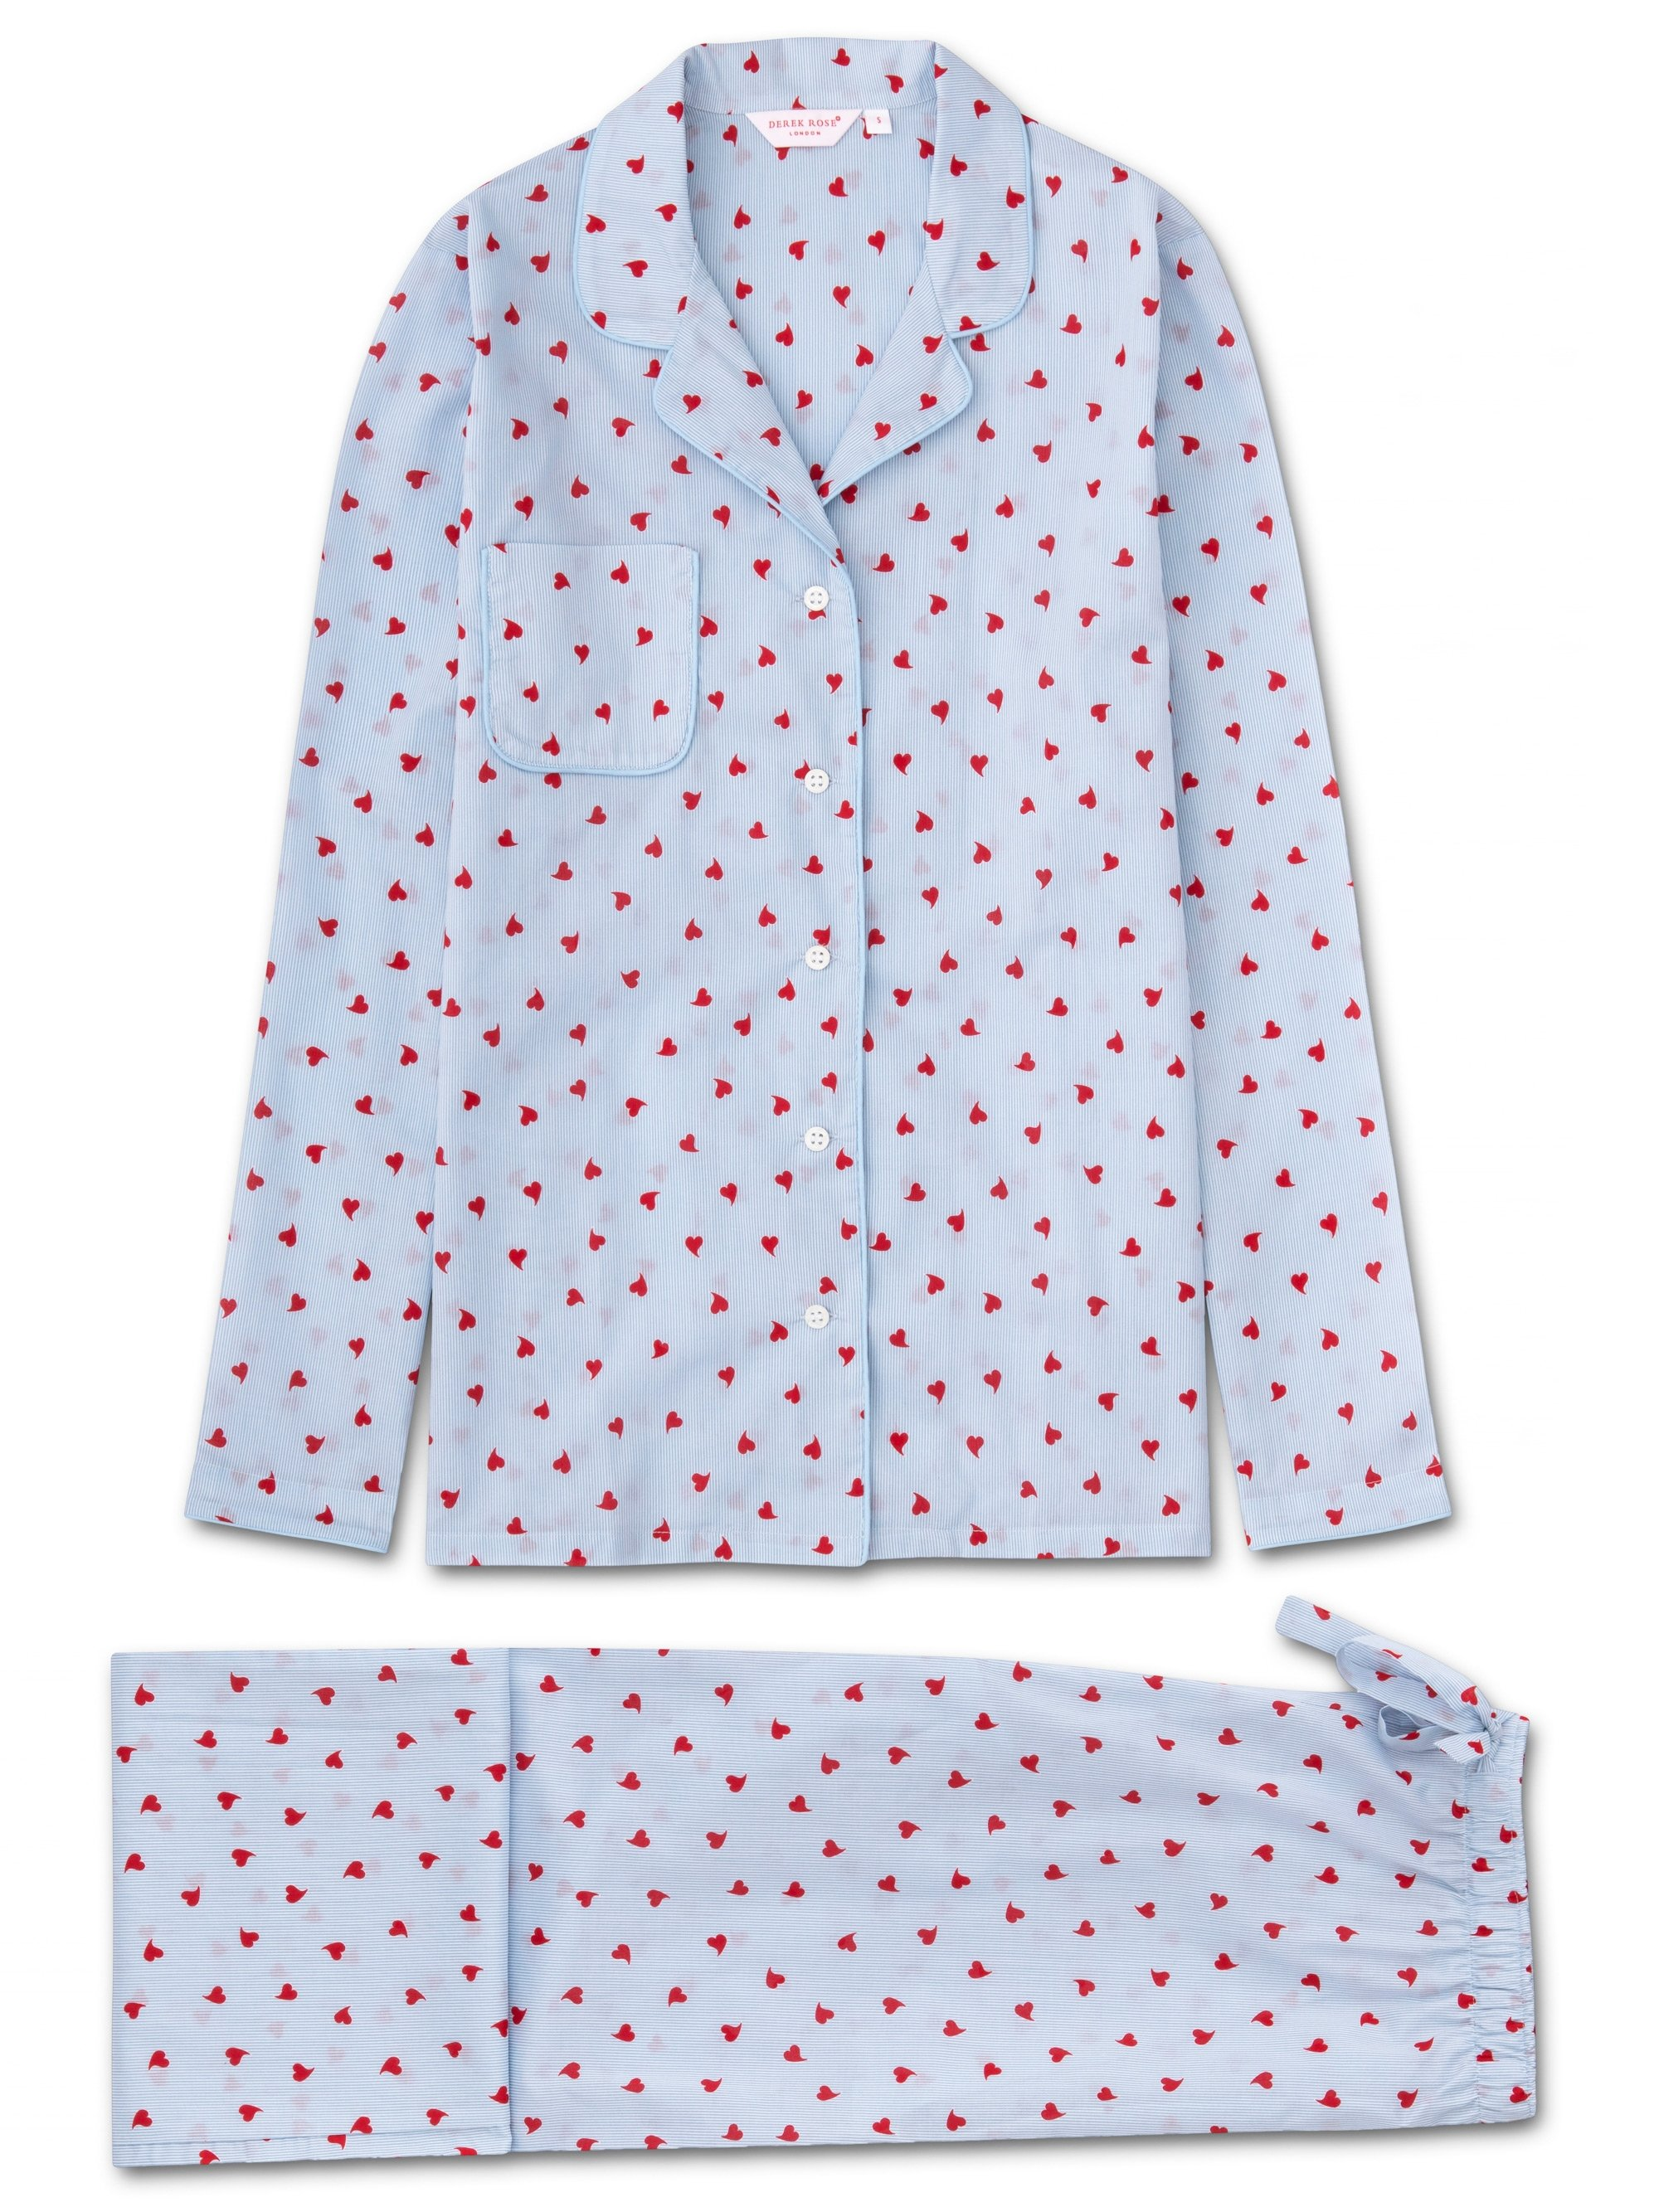 Women's Pyjamas Nelson 75 Cotton Batiste Blue